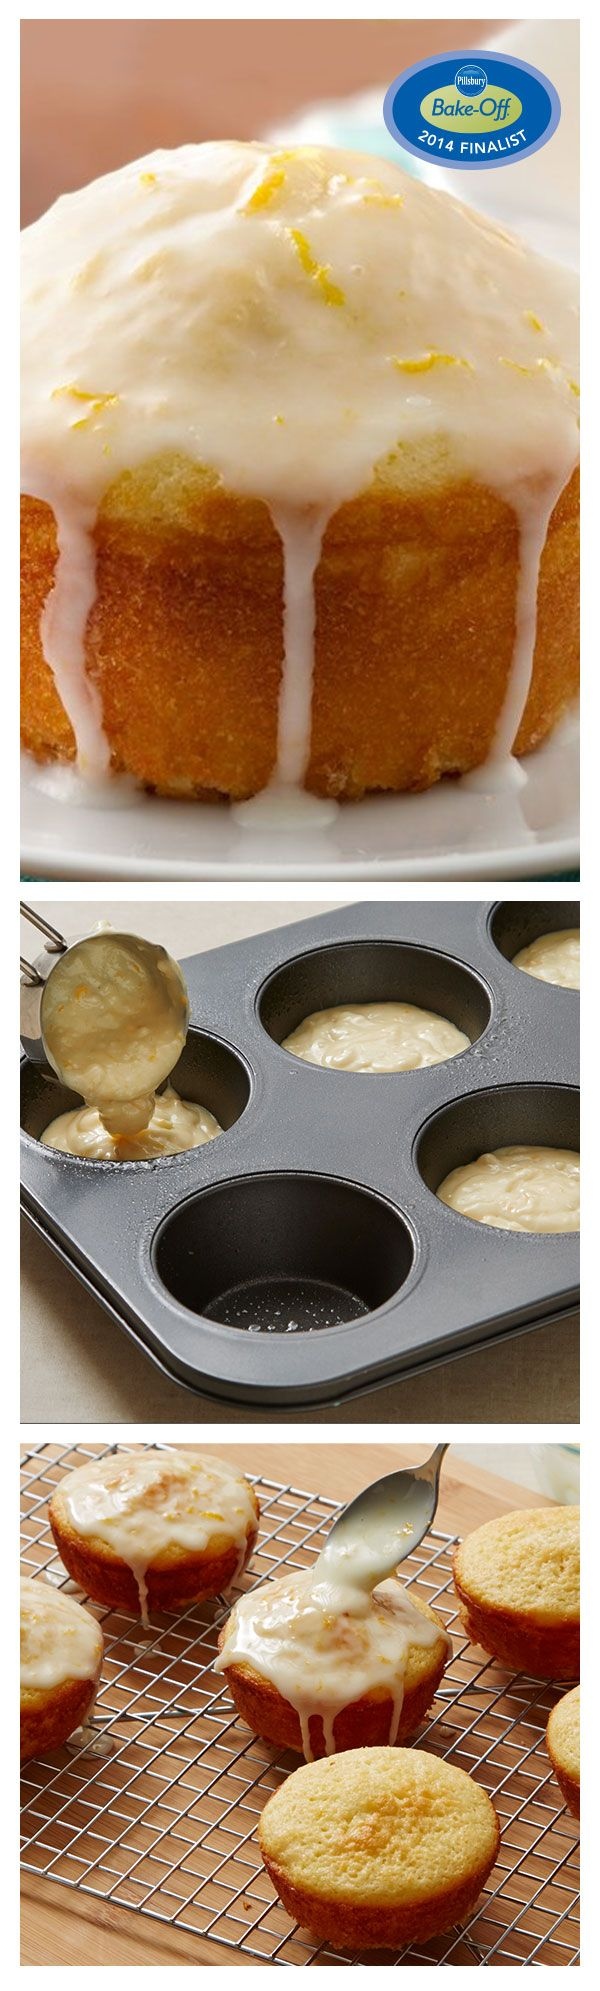 47th Bake-Off Contest Finalist: Glazed Orange Muffins by Paula Mahagnoul from Keystone, SD